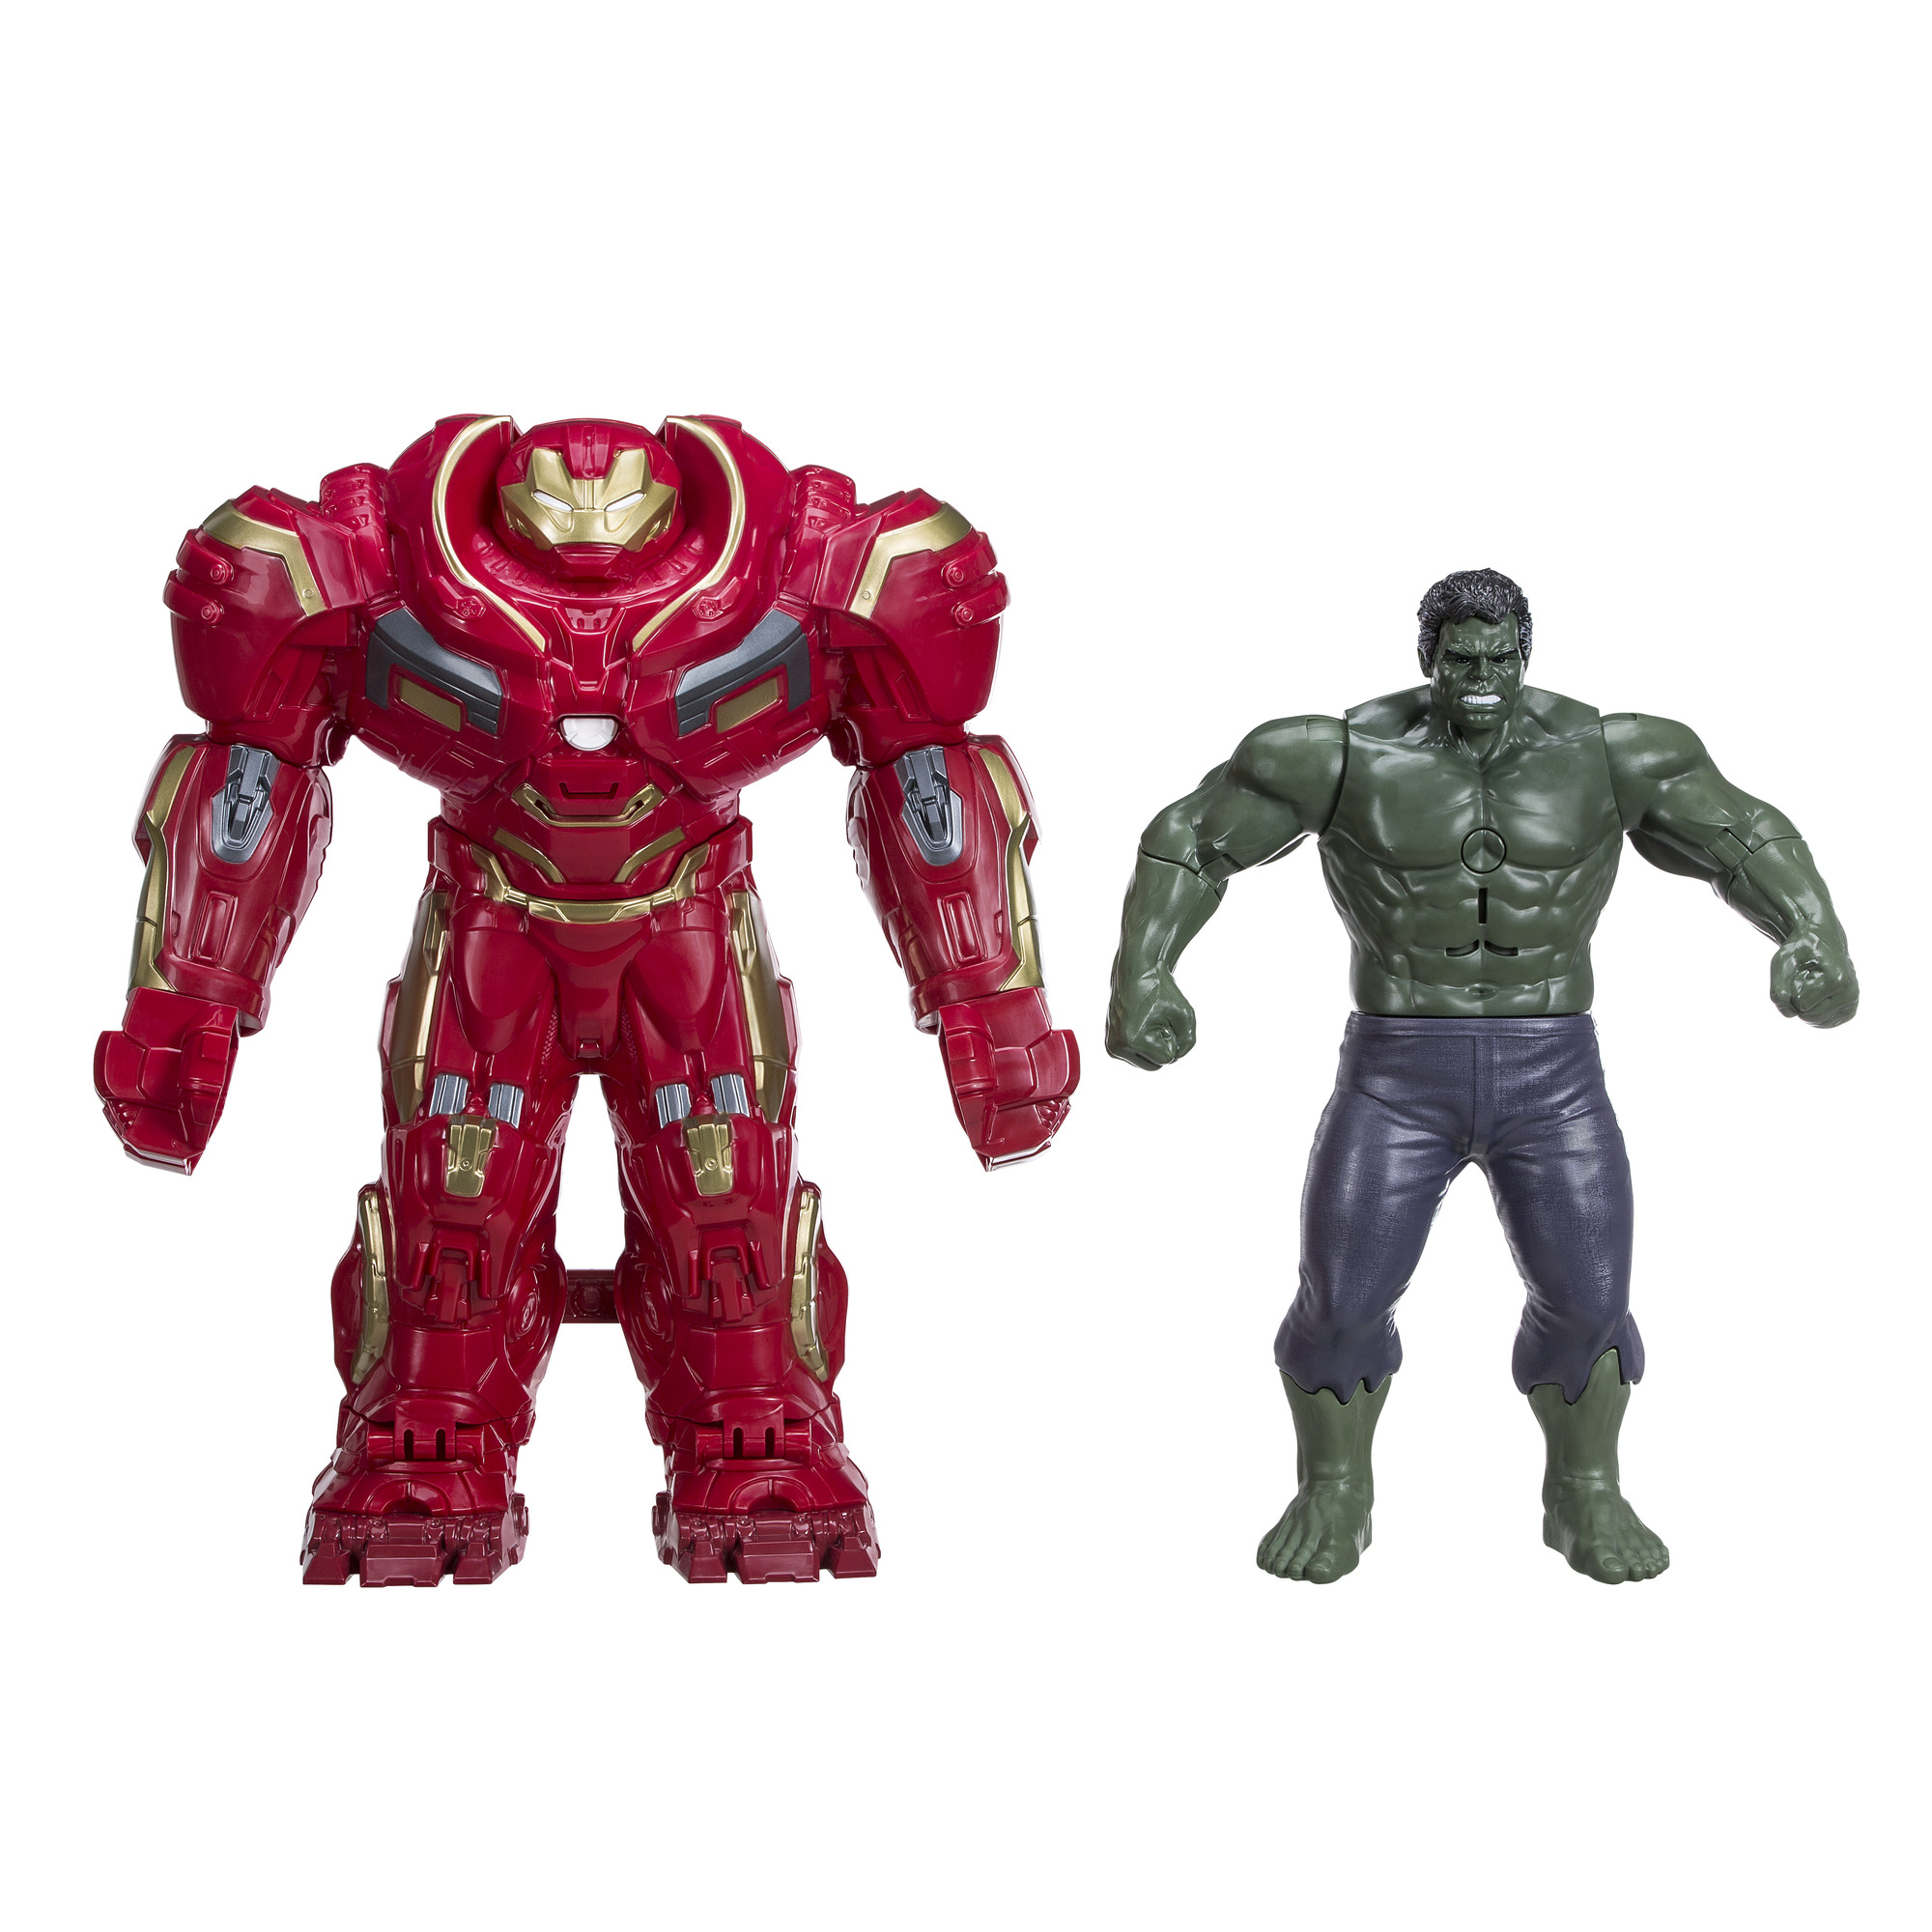 Marvel Studios: The First Ten Years Avengers: Infinity War Figure 3-Pack by Hasbro Inc.